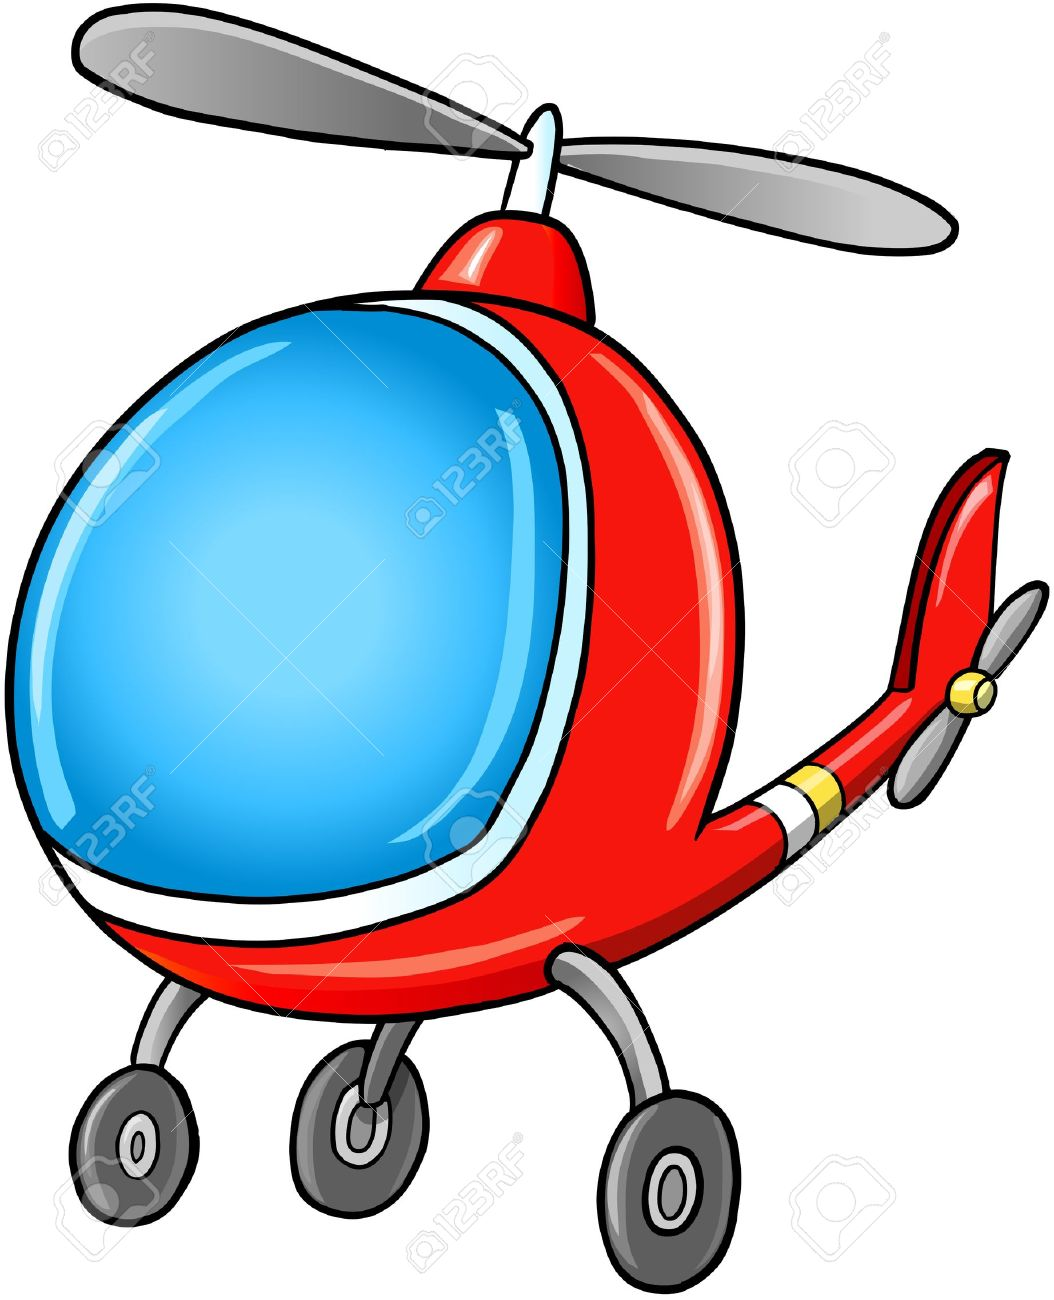 Doodle Cartoon Helicopter